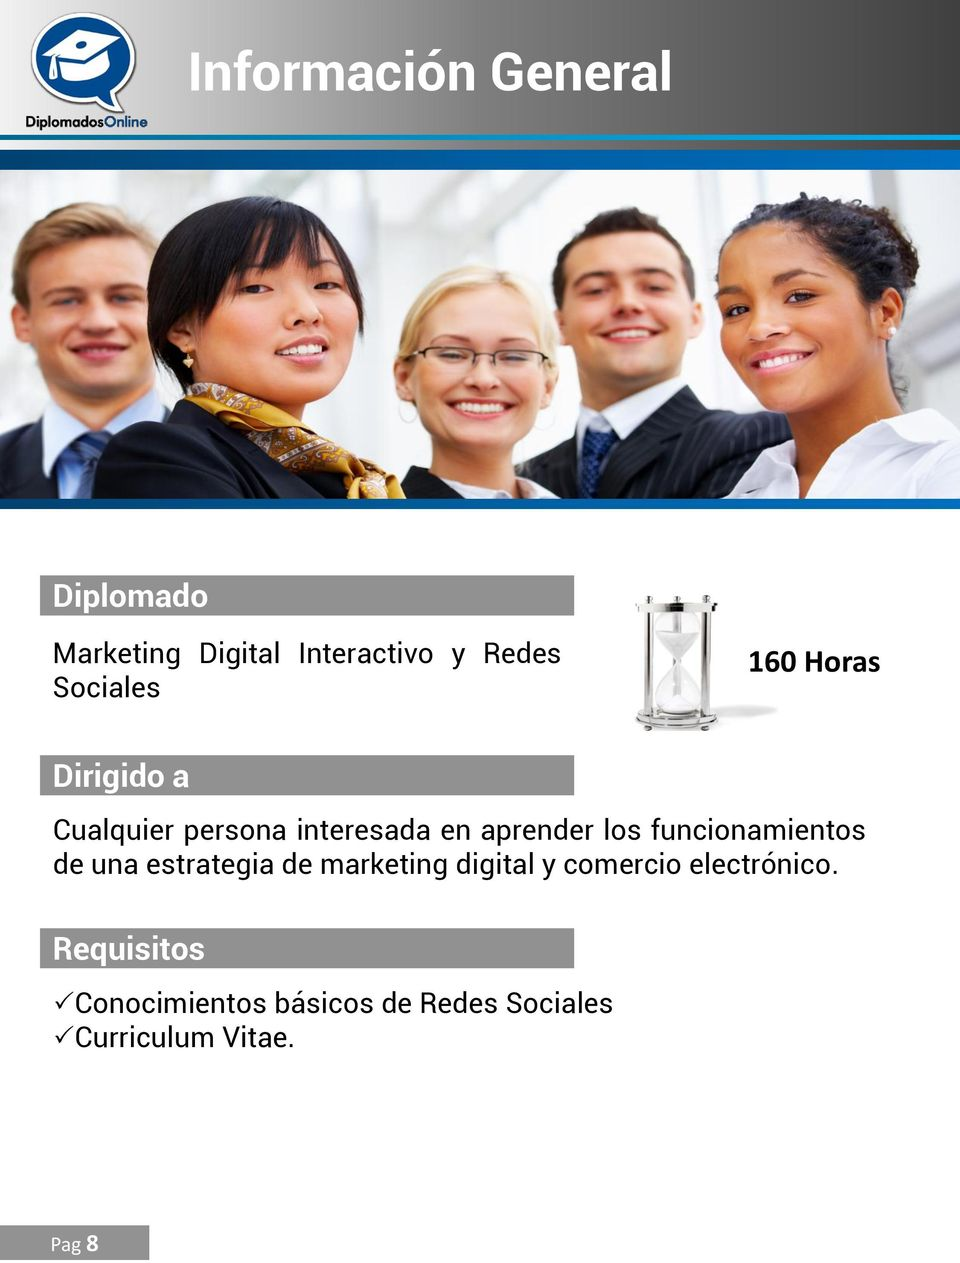 los funcionamientos de una estrategia de marketing digital y comercio